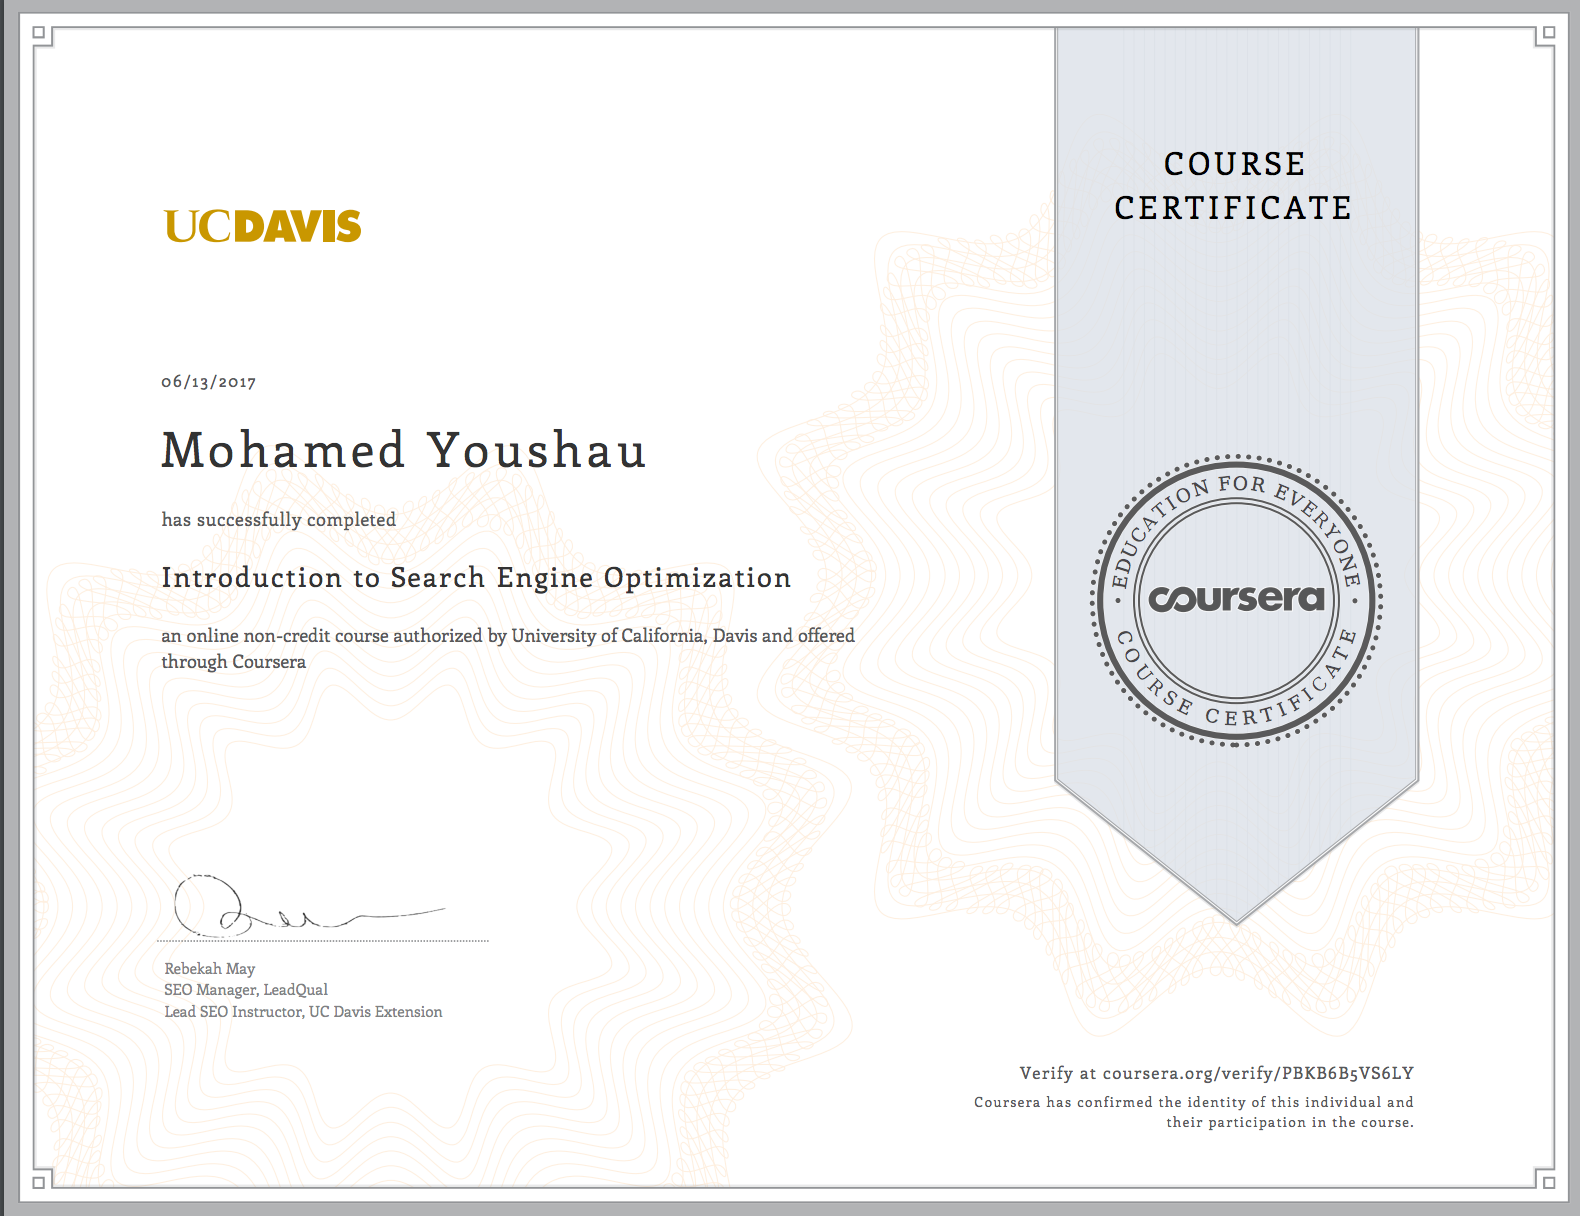 Deep Work Getting A Coursera Certificate Ushau Mohamed Medium